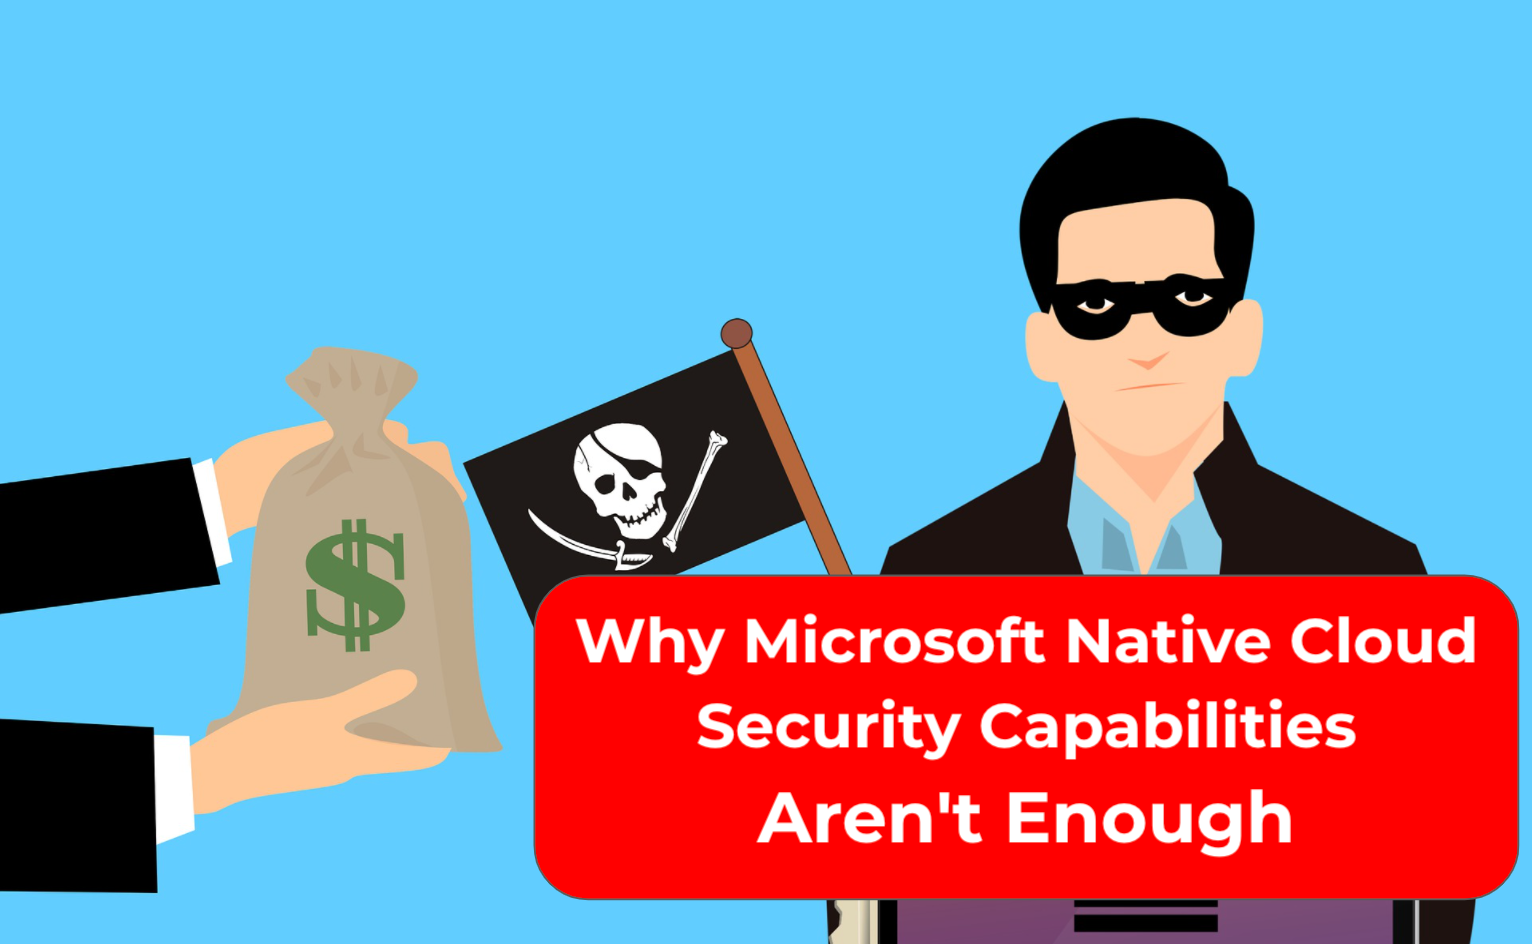 Why Microsoft Native Cloud Security Capabilities Aren't Enough